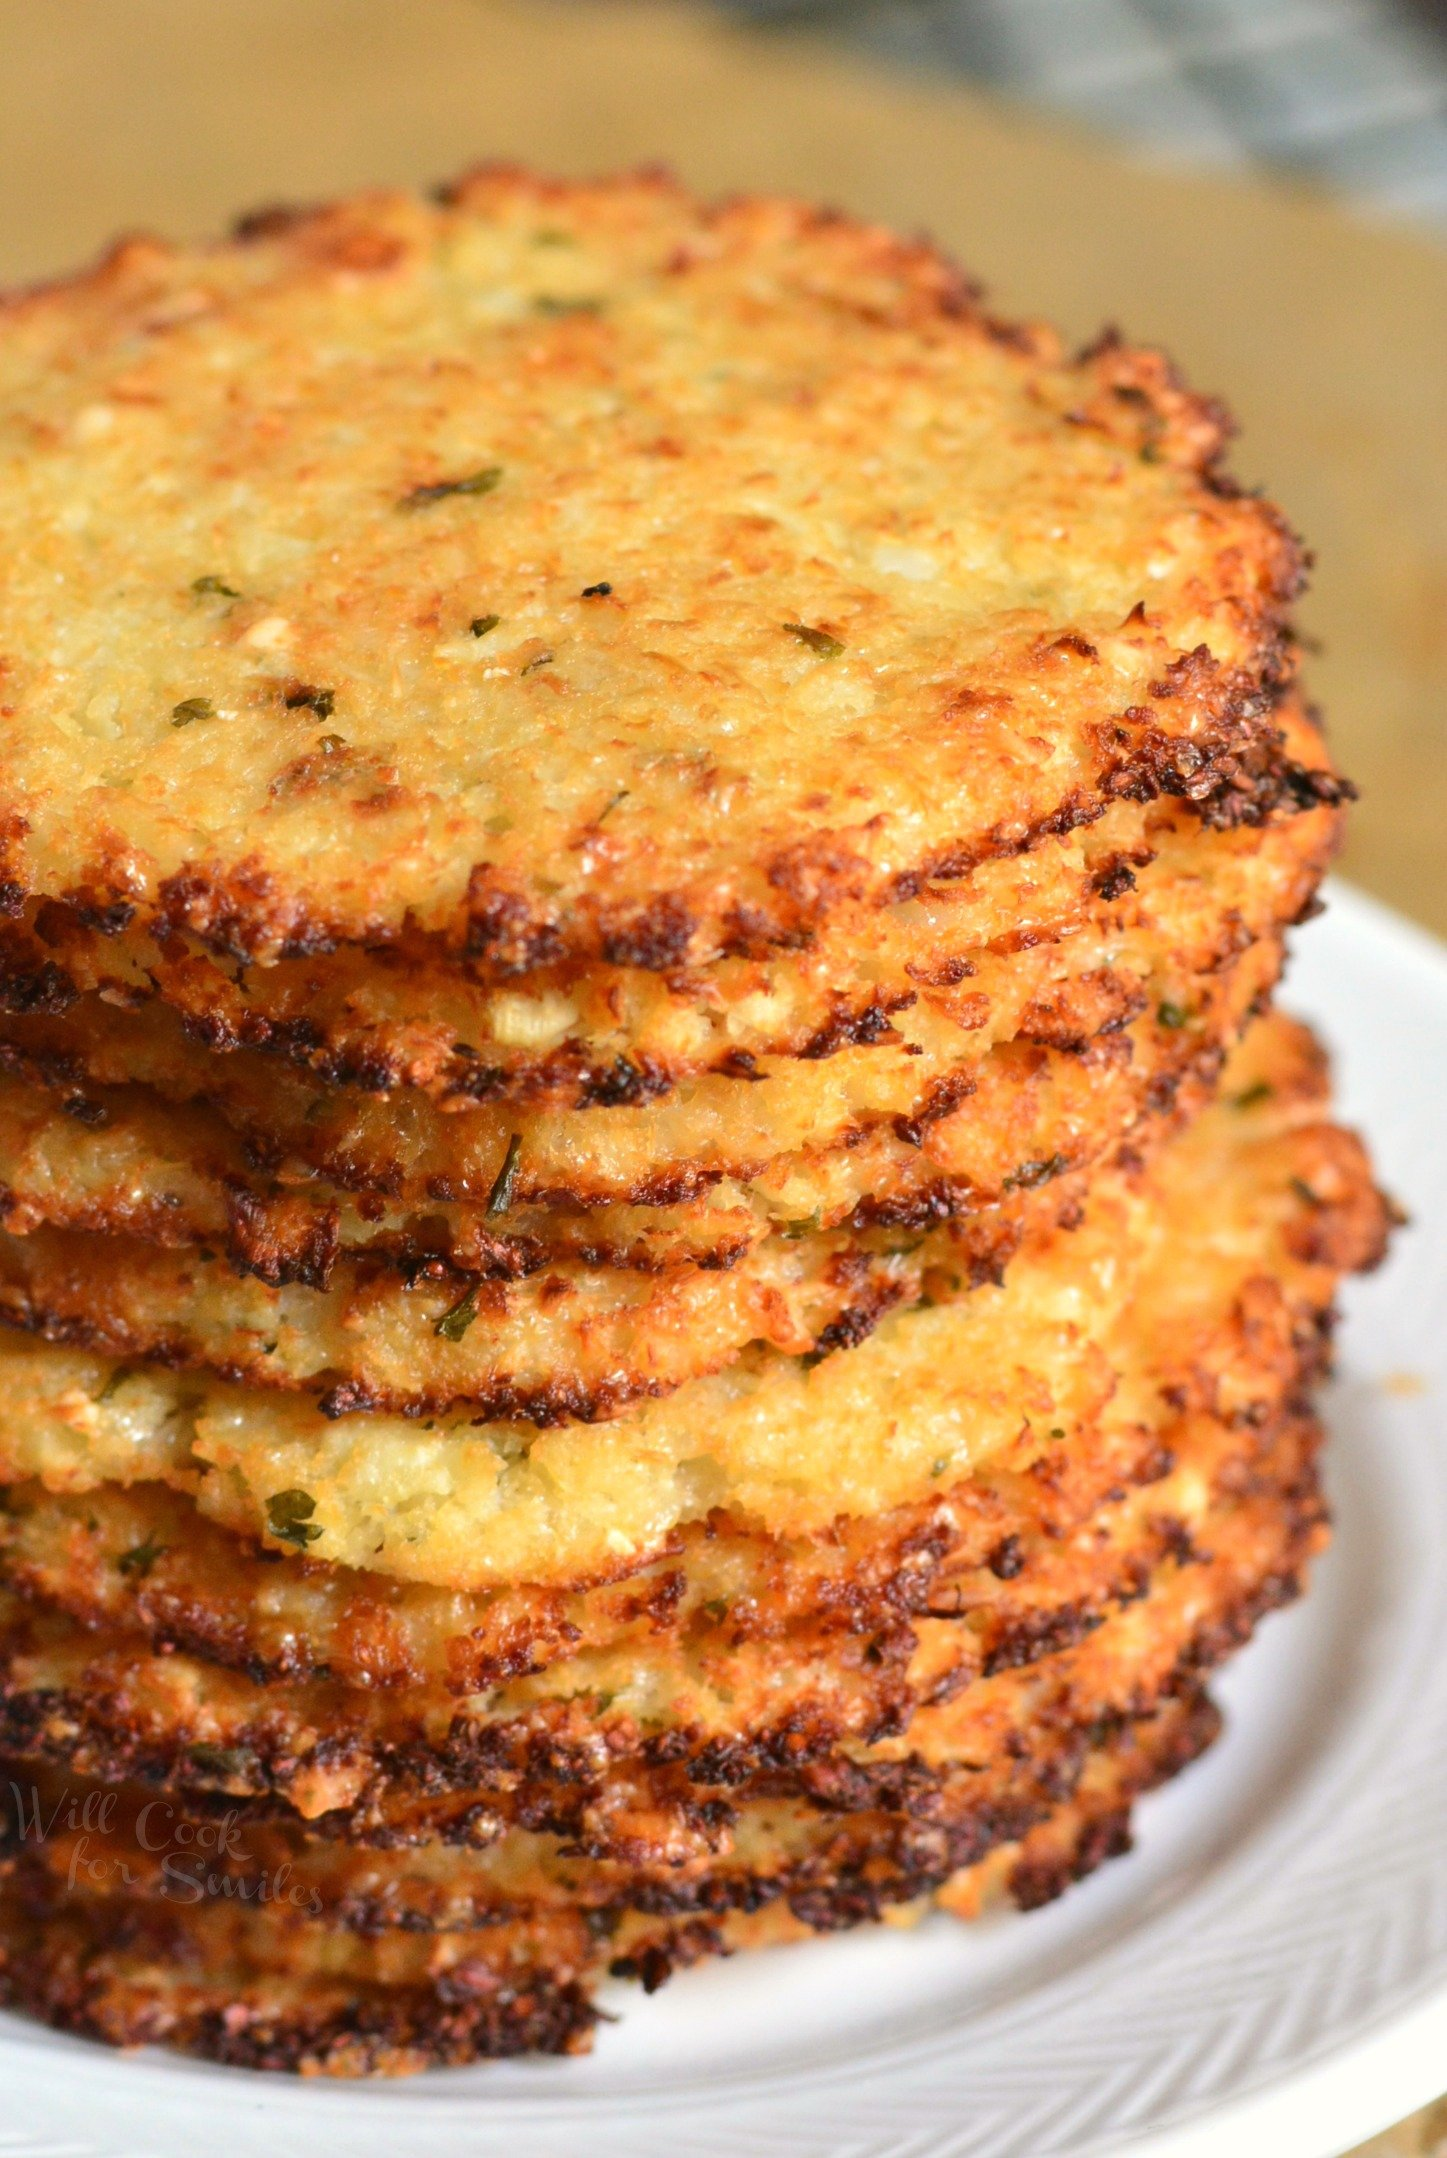 Cauliflower Parmesan Crisps. Amazing cauliflower snack that kids and adult will love. All you need is a head of cauliflower, block of Parmesan cheese, dry parsley flakes, and some garlic powder. #snack #cauliflower #parmesan